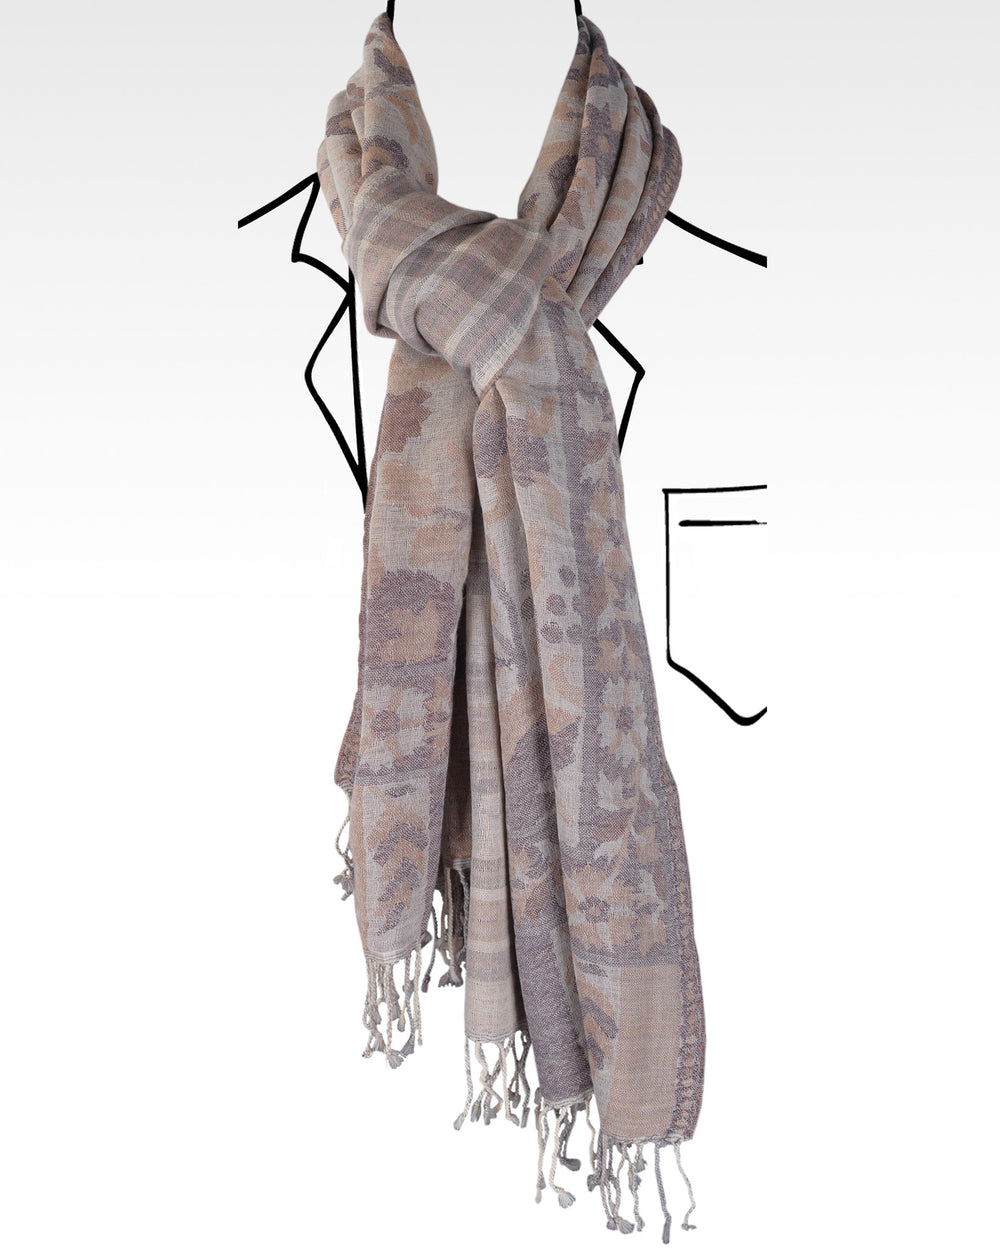 Merino Wool Scarf Tan Cream Purple Flower Duel Side Design